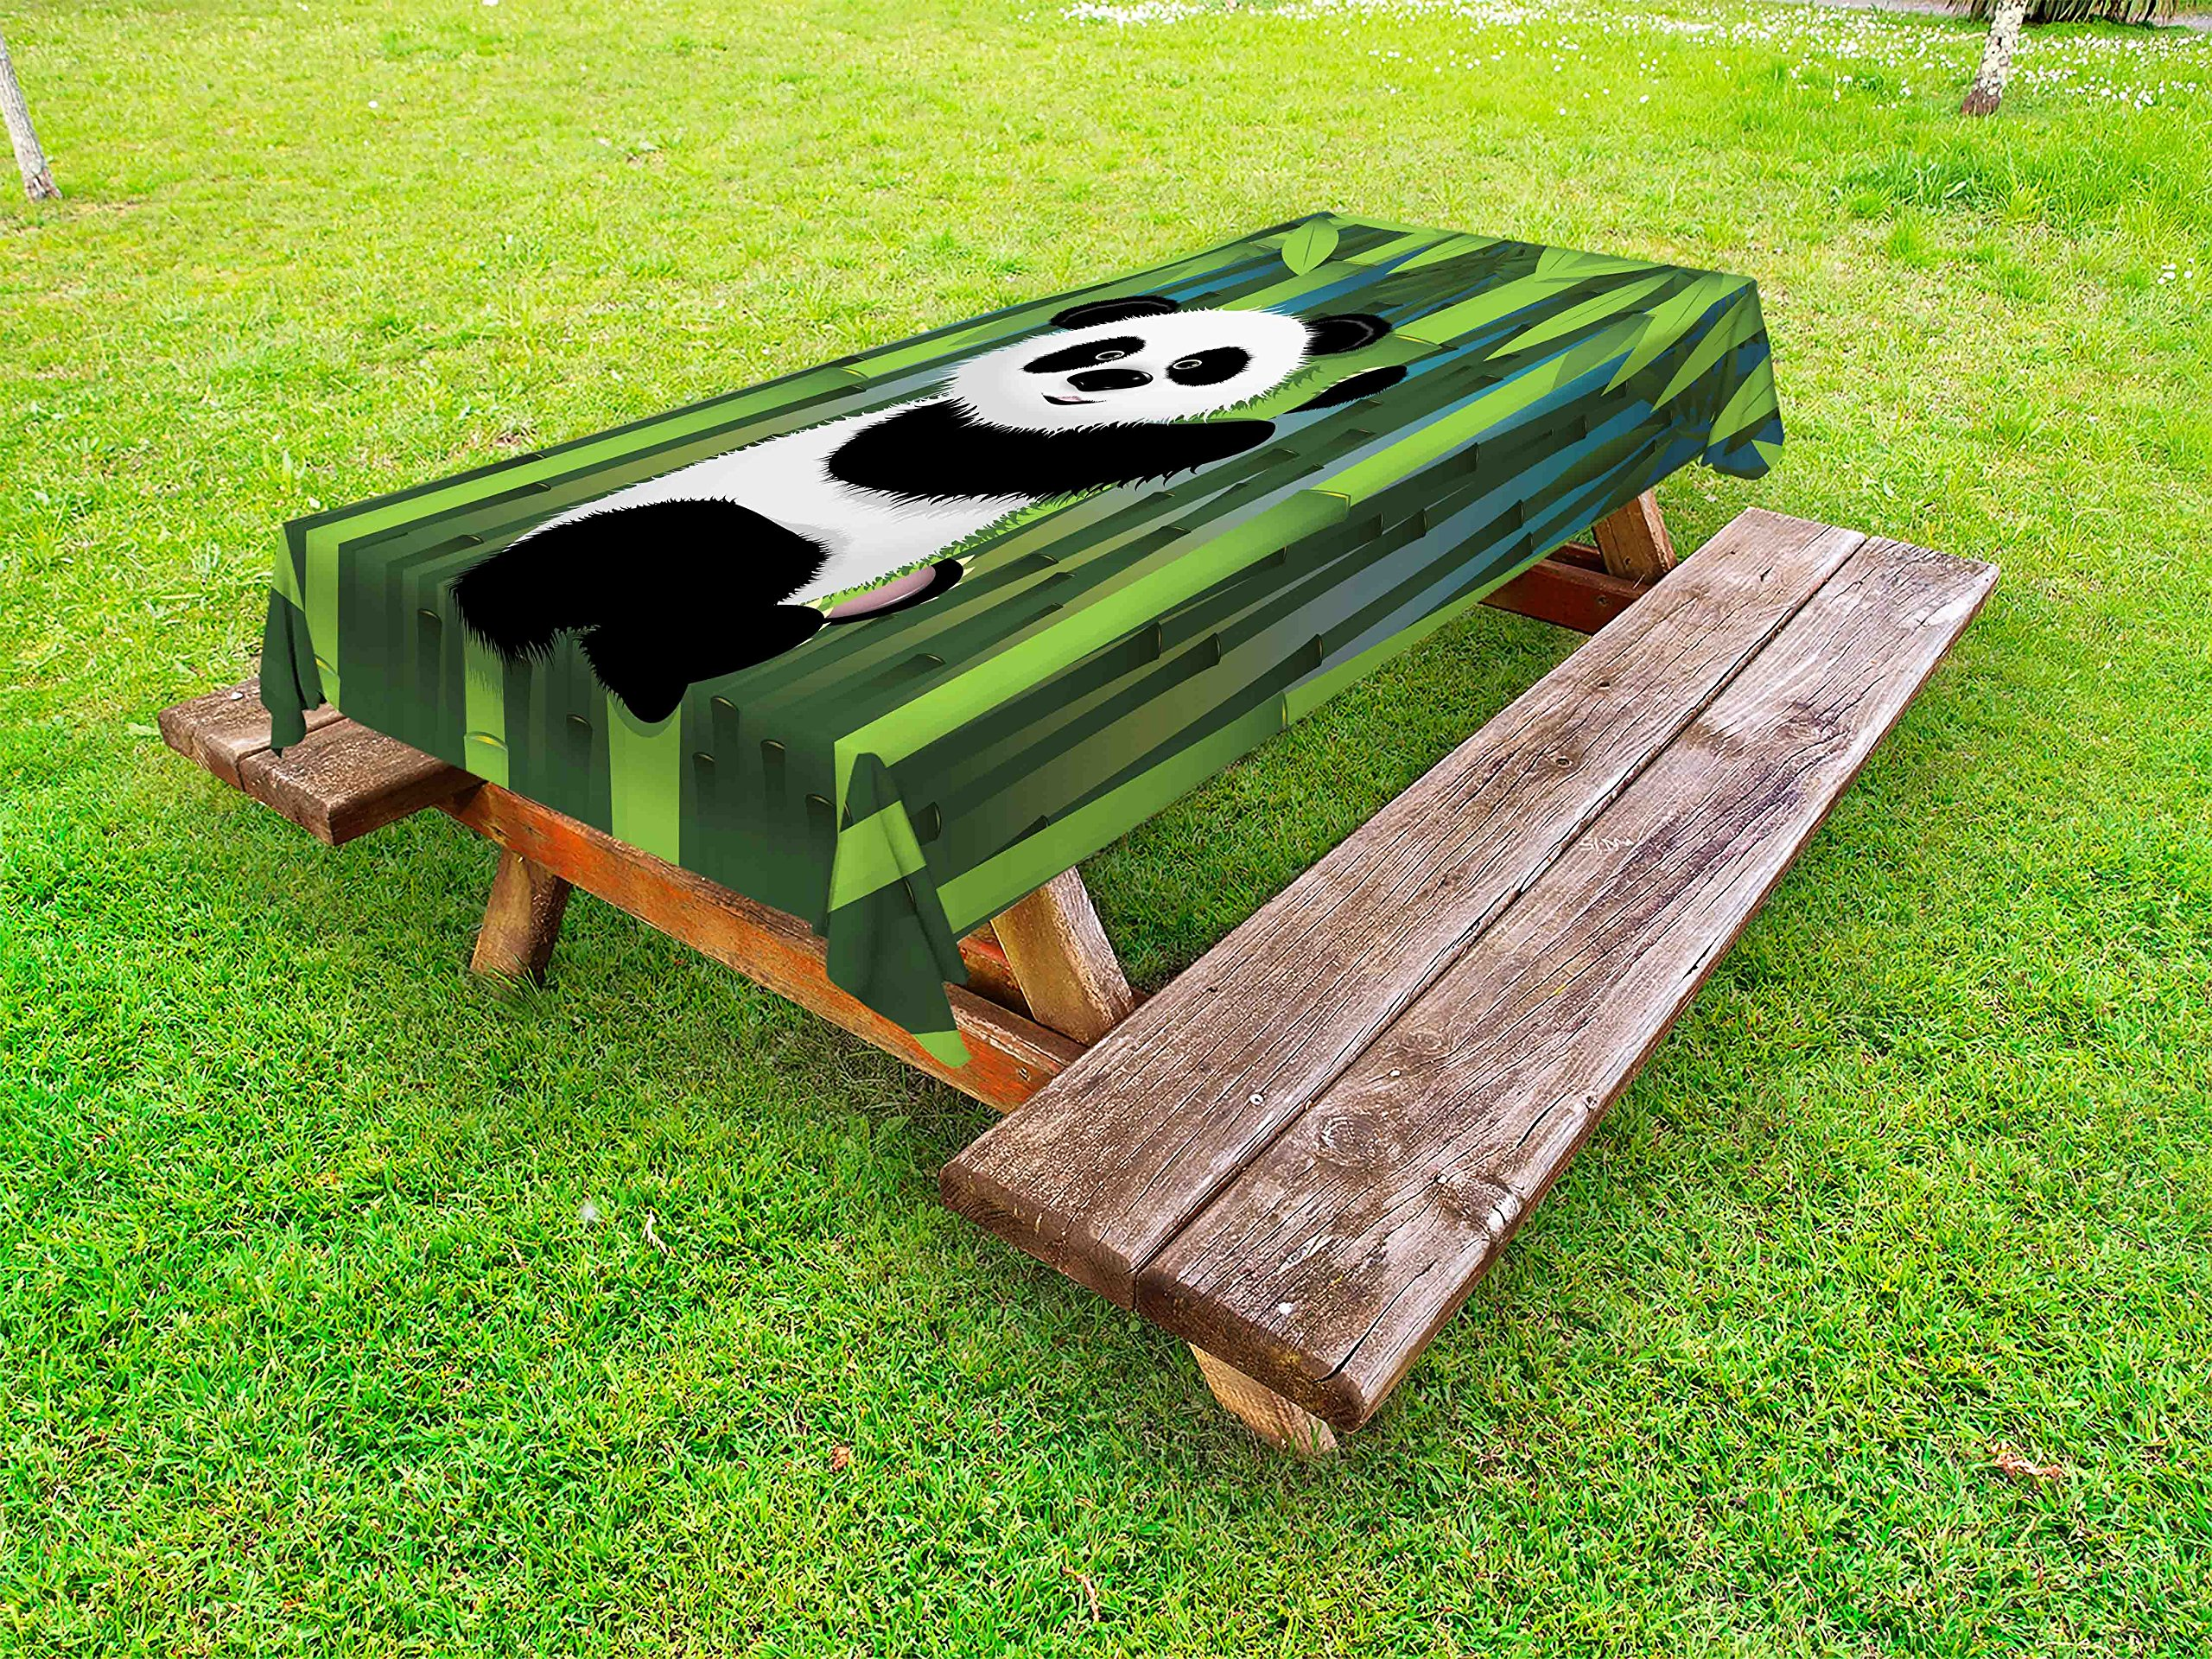 Lunarable Cartoon Outdoor Tablecloth, Curious Baby Panda on Stem of the Bamboo Bear Jungle Wood Illustration, Decorative Washable Picnic Table Cloth, 58 X 84 Inches, Fern Green Black White